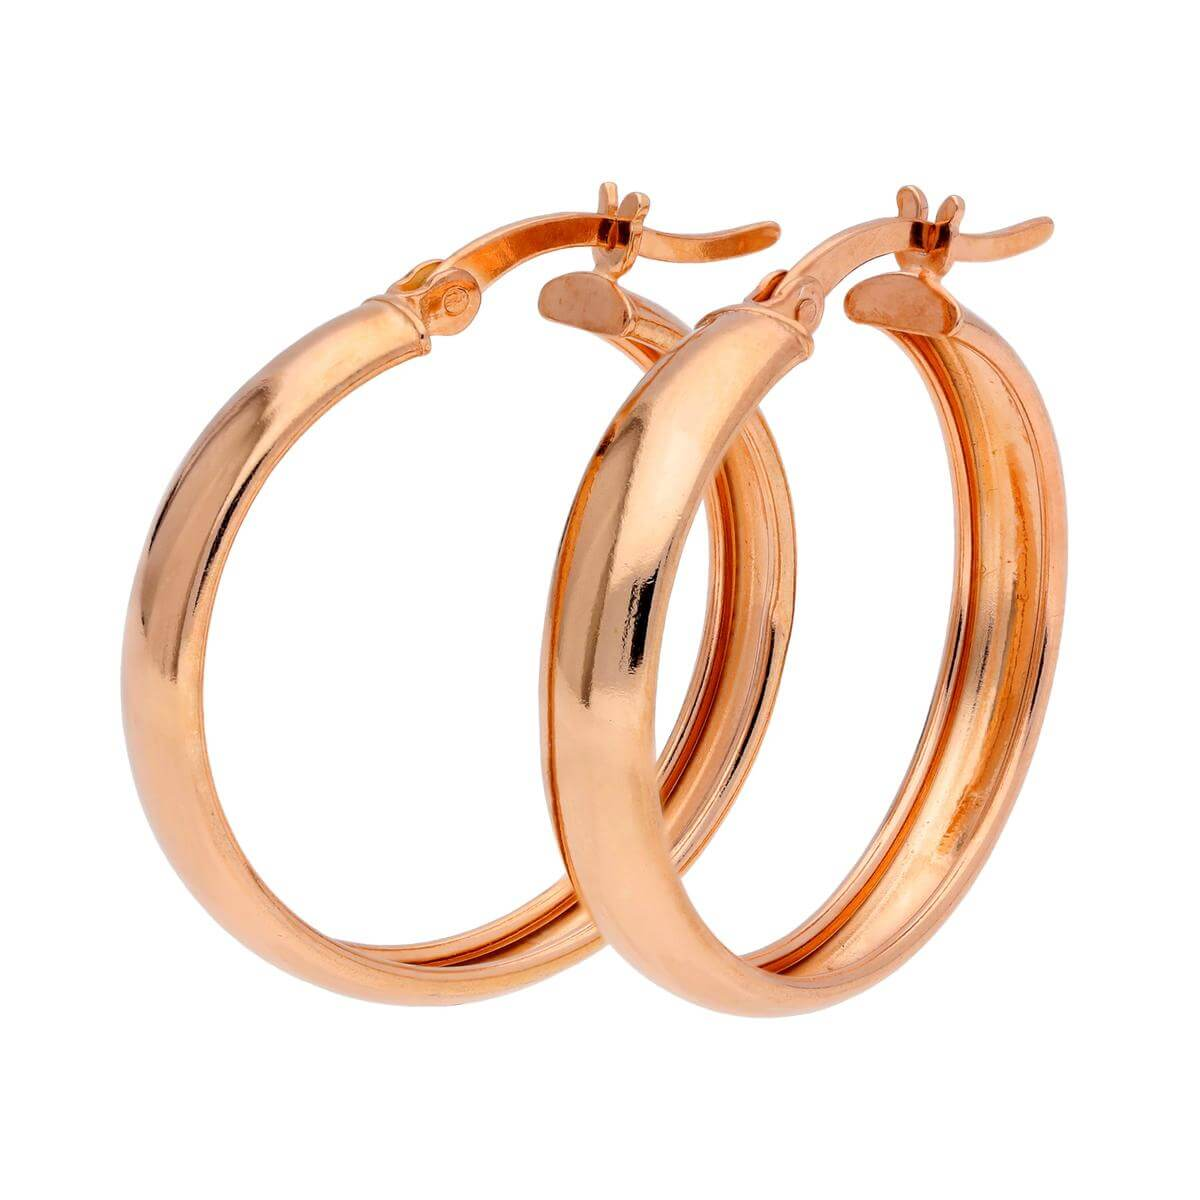 Rose Gold Plated Sterling Silver Creole 25mm Hoop Earrings